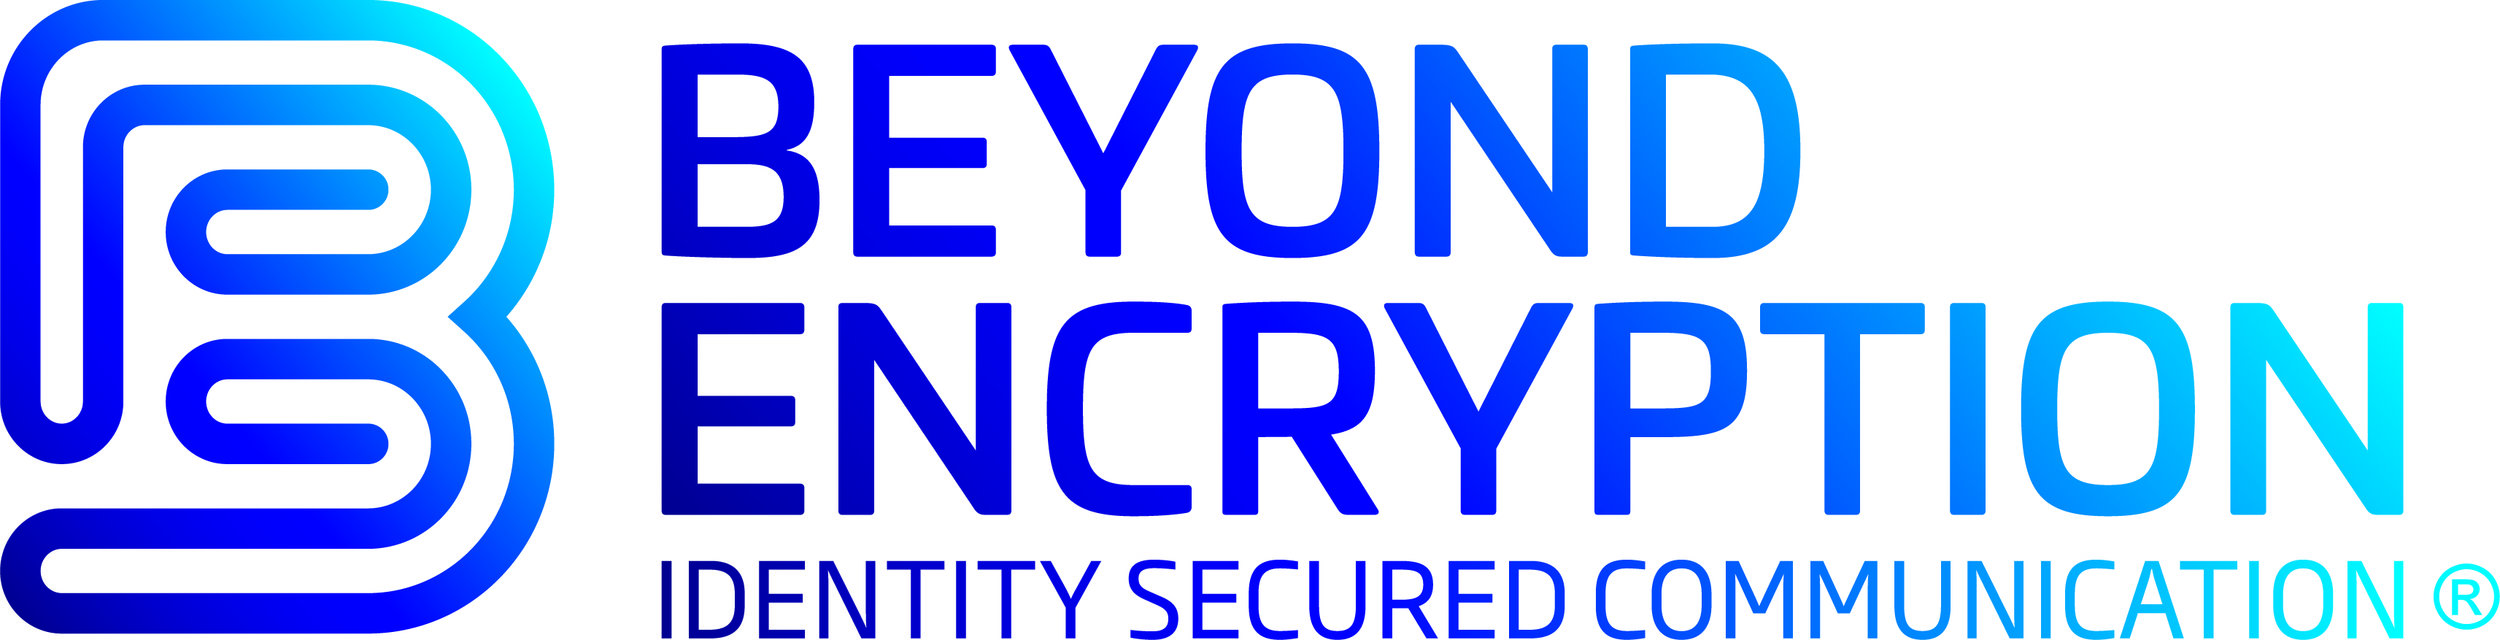 Beyond Encryption - Beyond Encryption is a specialist secure digital messaging and engagement platform which creates competitive advantage by securing your existing communications, increasing your client engagement and reducing your commercial risk.